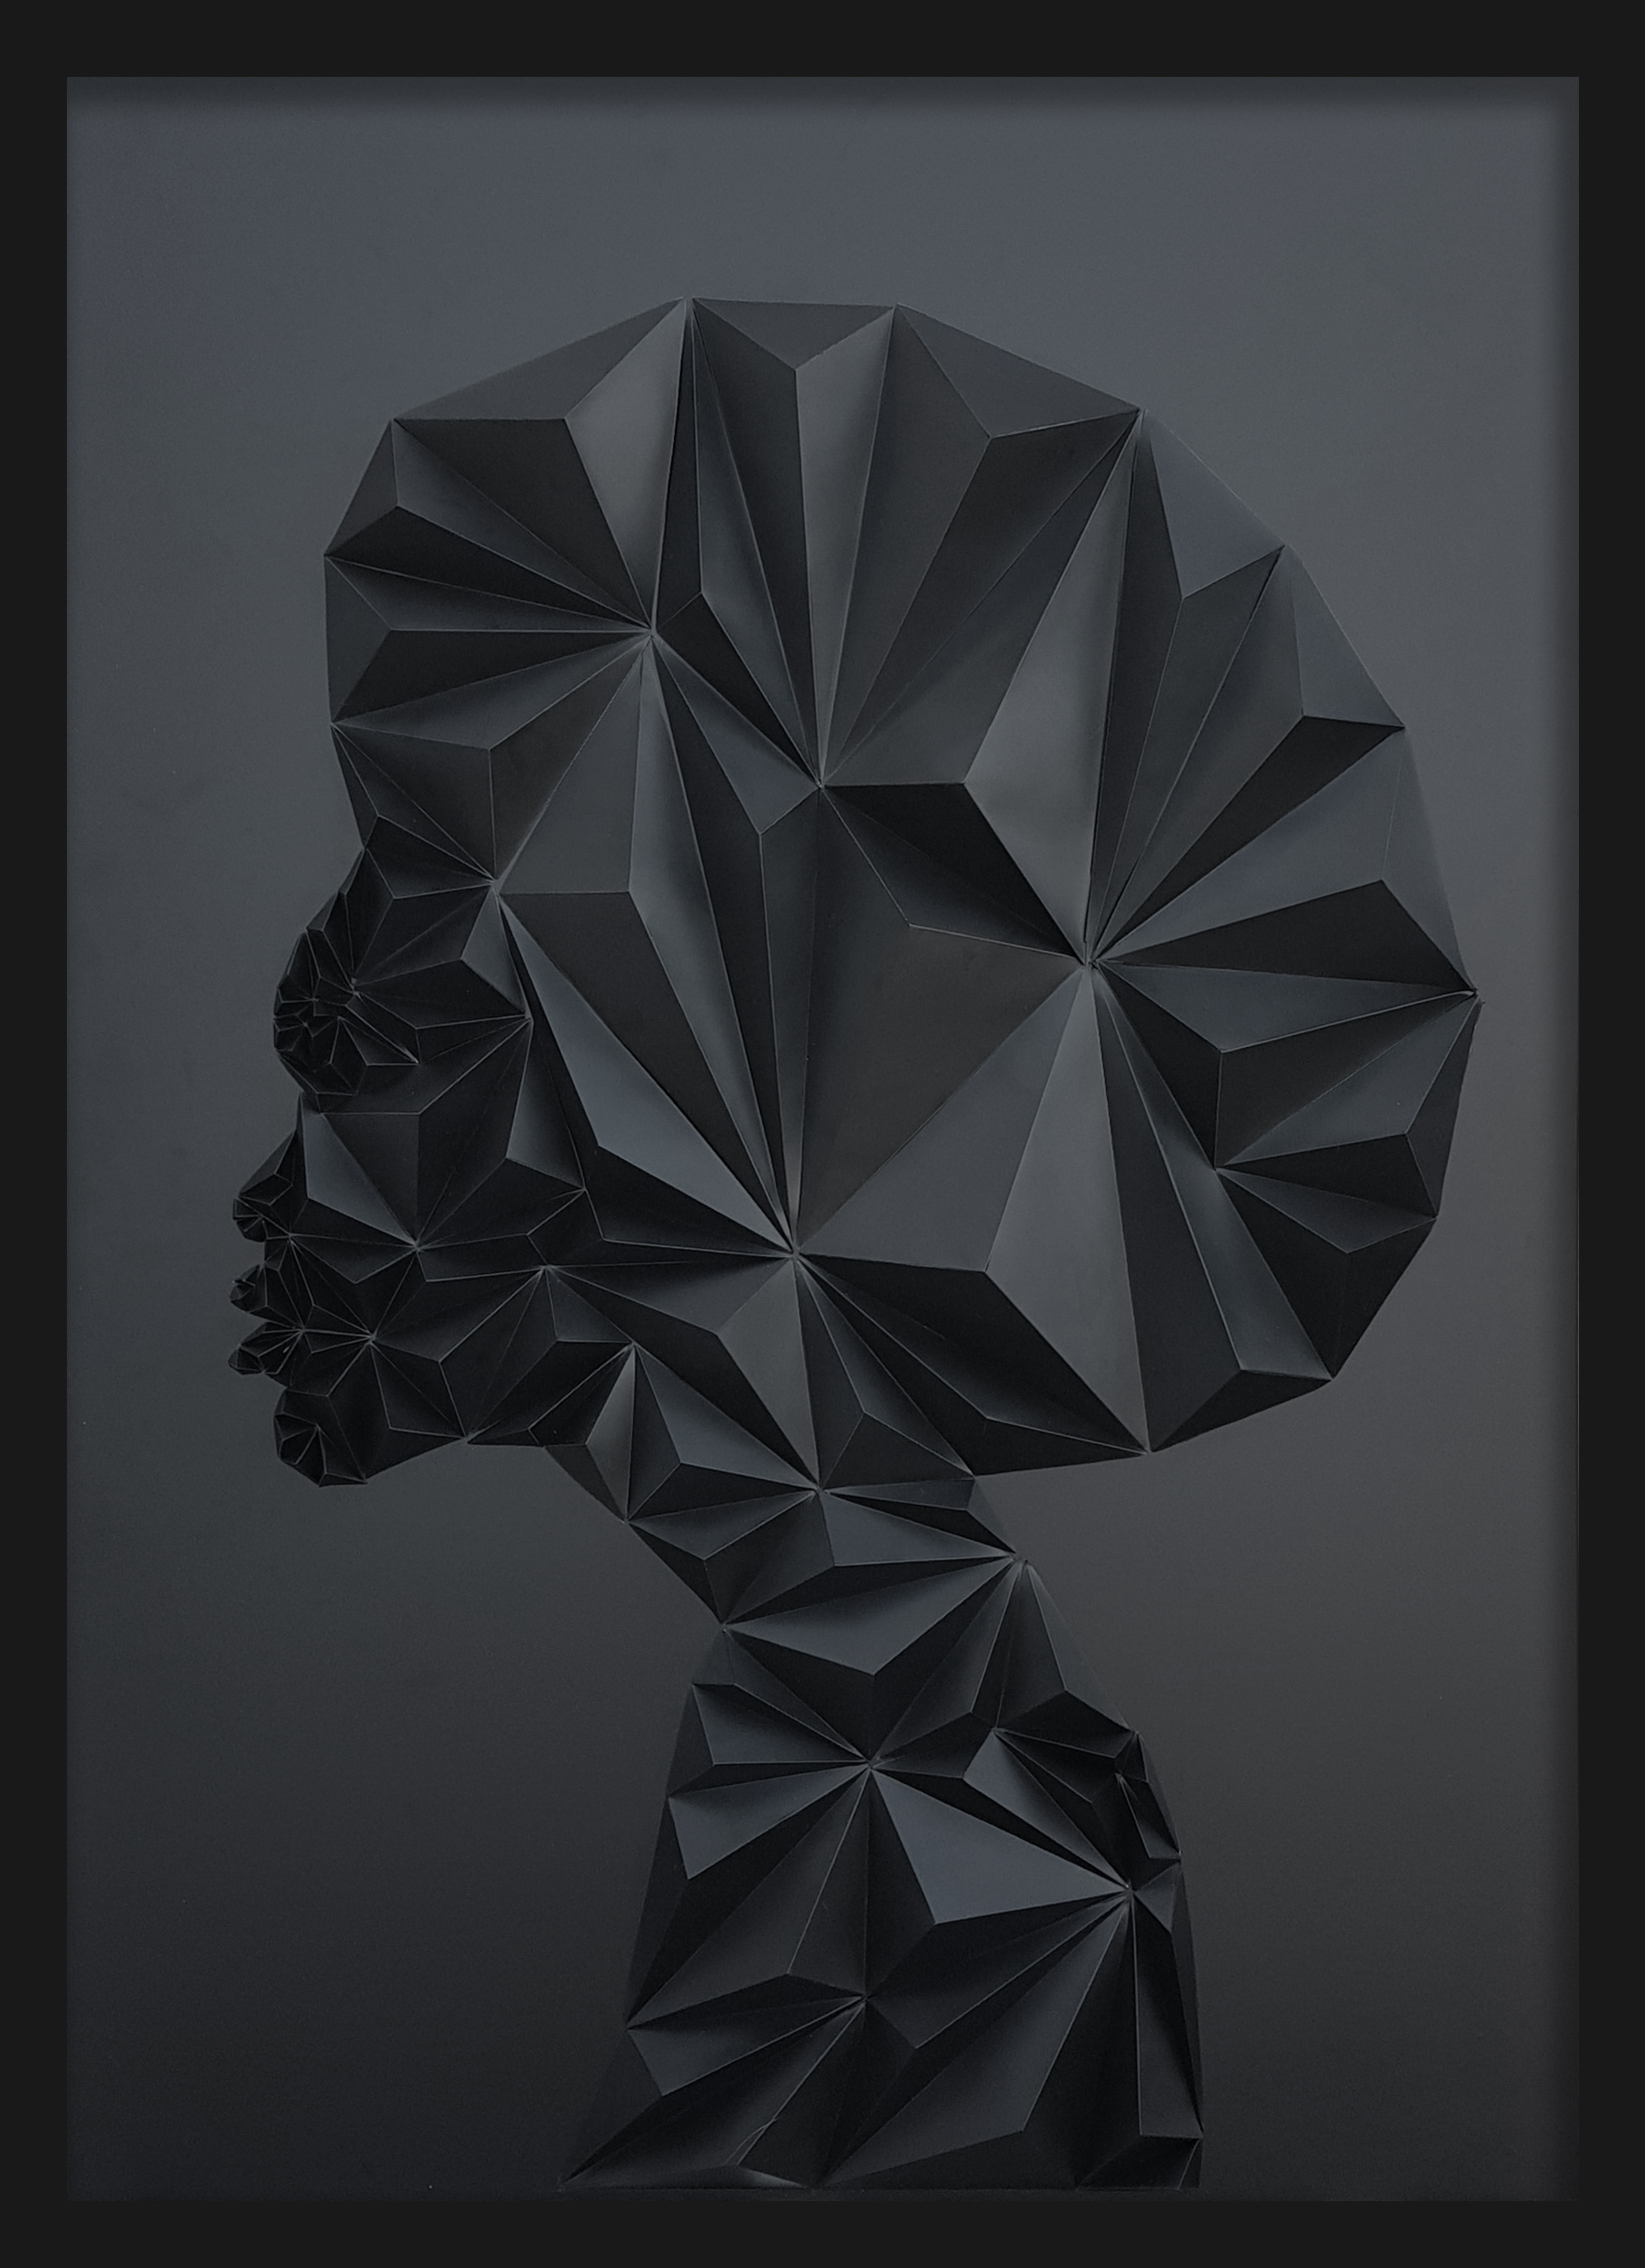 ATAI1 by Hen Songo Wall sculpture at Lemon Frame Gallery